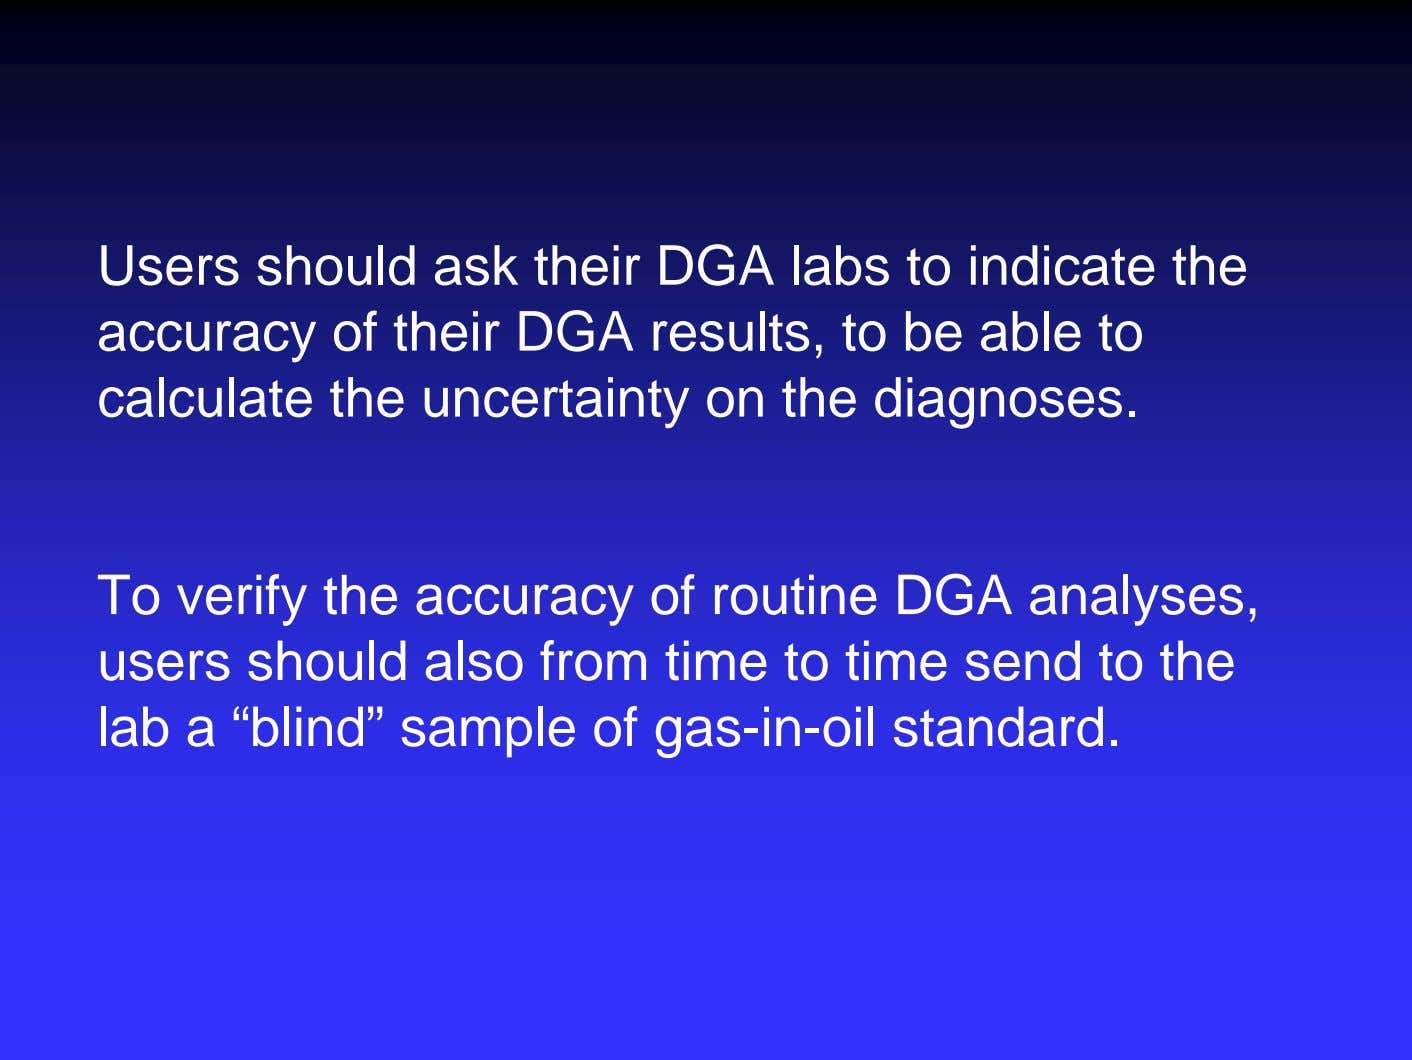 Users should ask their DGA labs to indicate the accuracy of their DGA results, to